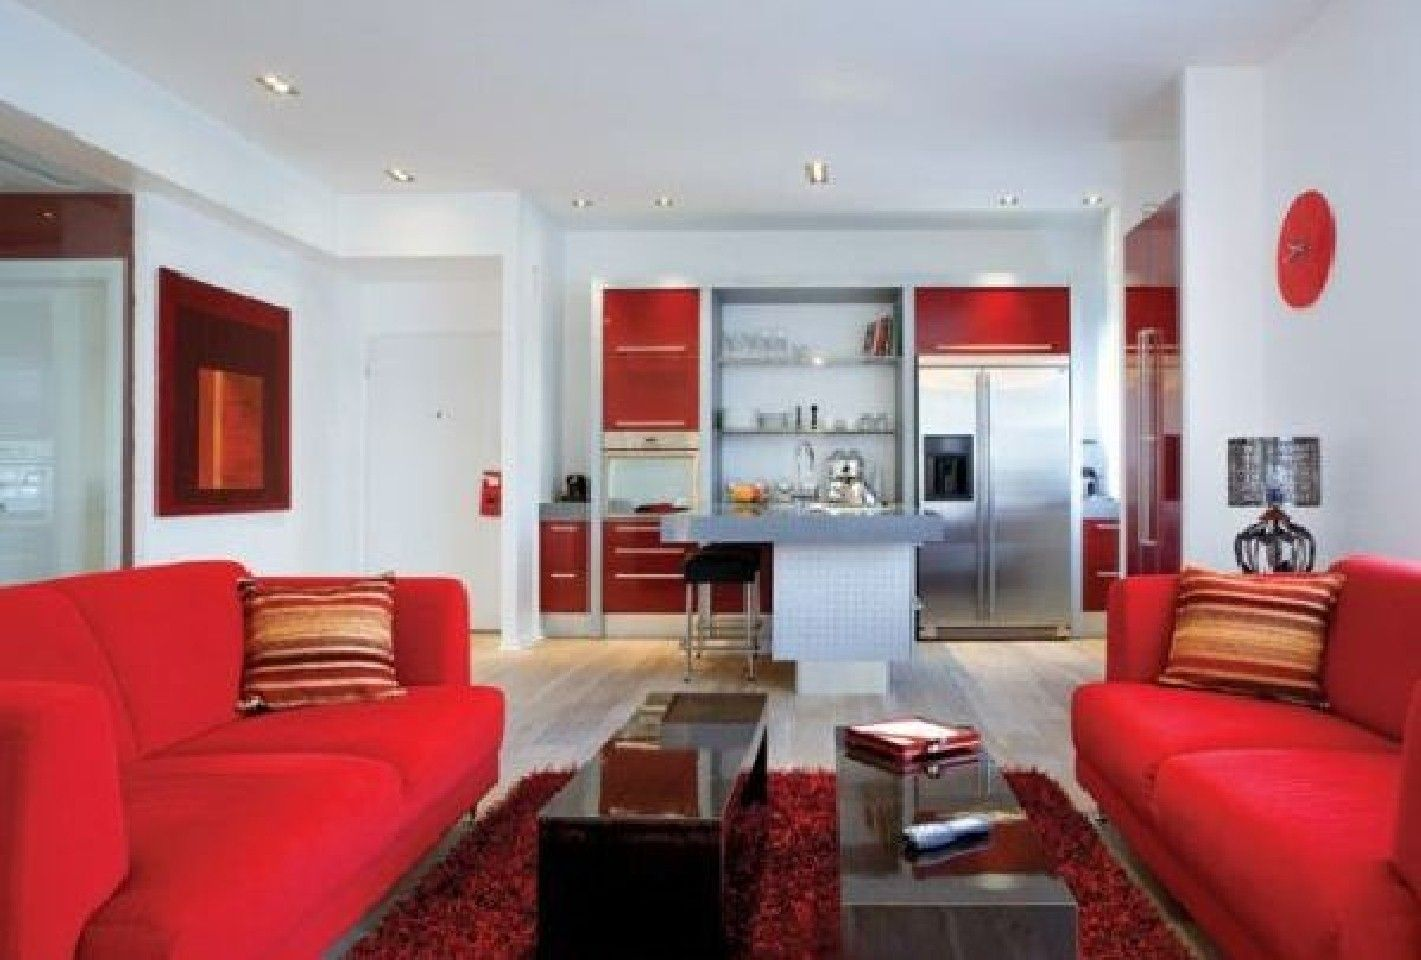 Apartments impressive open plan apartment design ideas with amazing red fabric sofas and gorgeous black long table combined soft red fur rug also wonderful